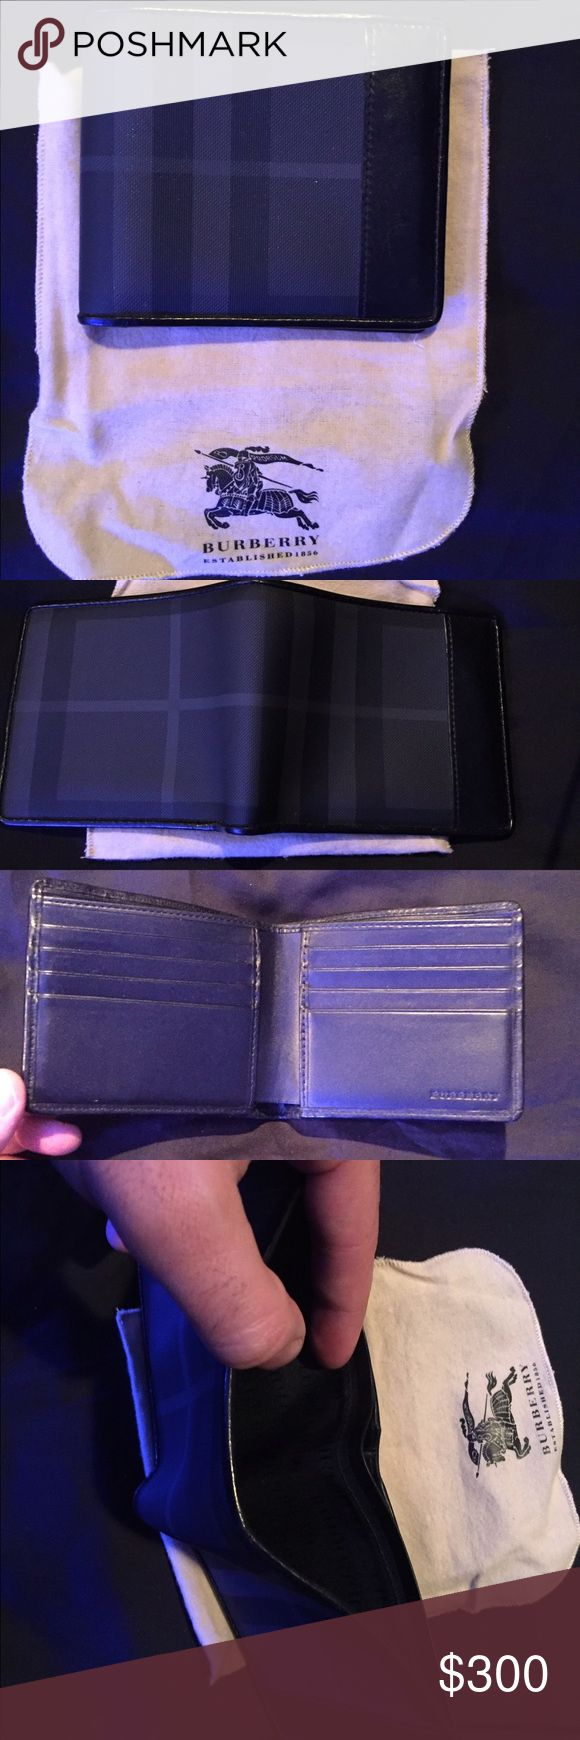 Authentic Burberry Wallet Authentic Men's Burberry BiFold Wallet. In great condition, minor scuffage on the leather trim as seen. 11 x 9cm/4.3 x 3.5in and 6 card slots and room for cash. Used only a handful of times. NO lowball offers. NO trades. Burberry Bags Wallets